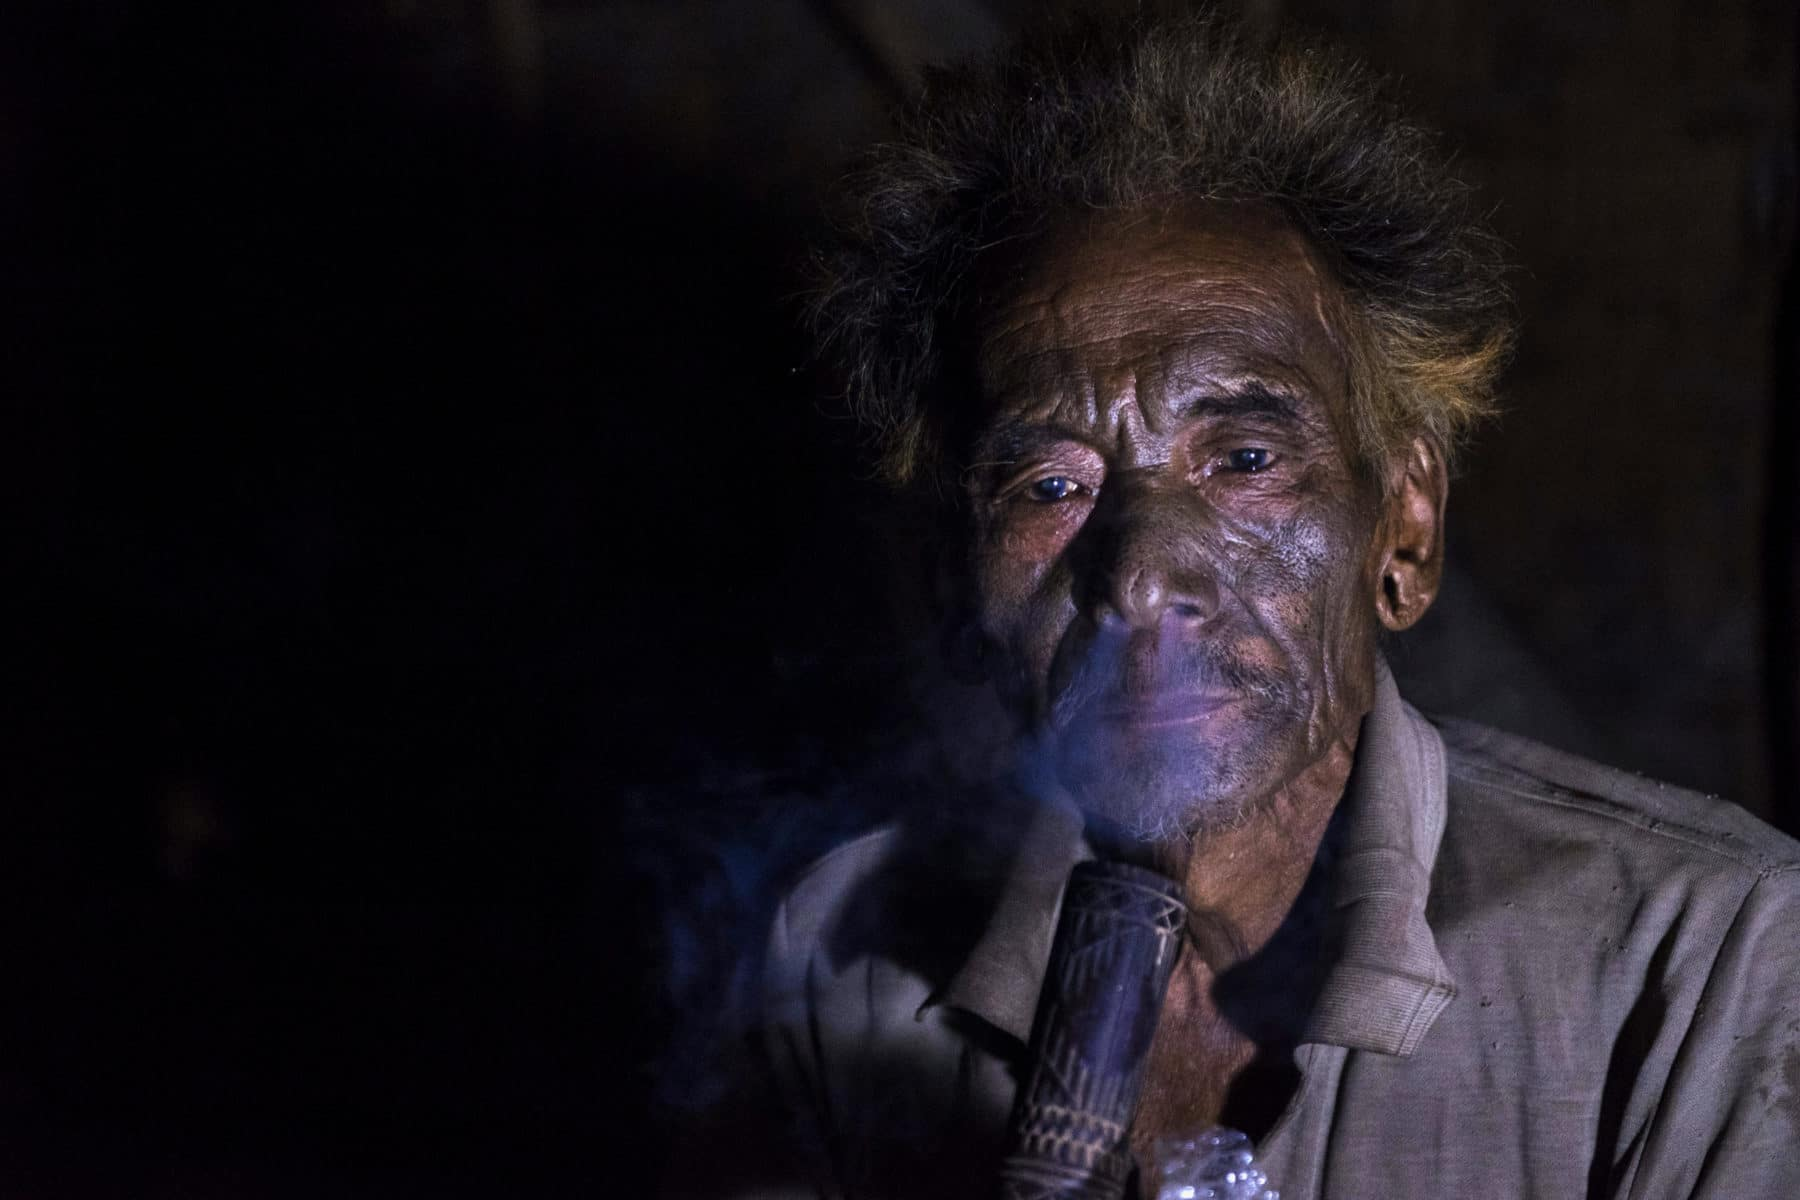 headhunter-smoking-opium-lungwa-mon-nagaland